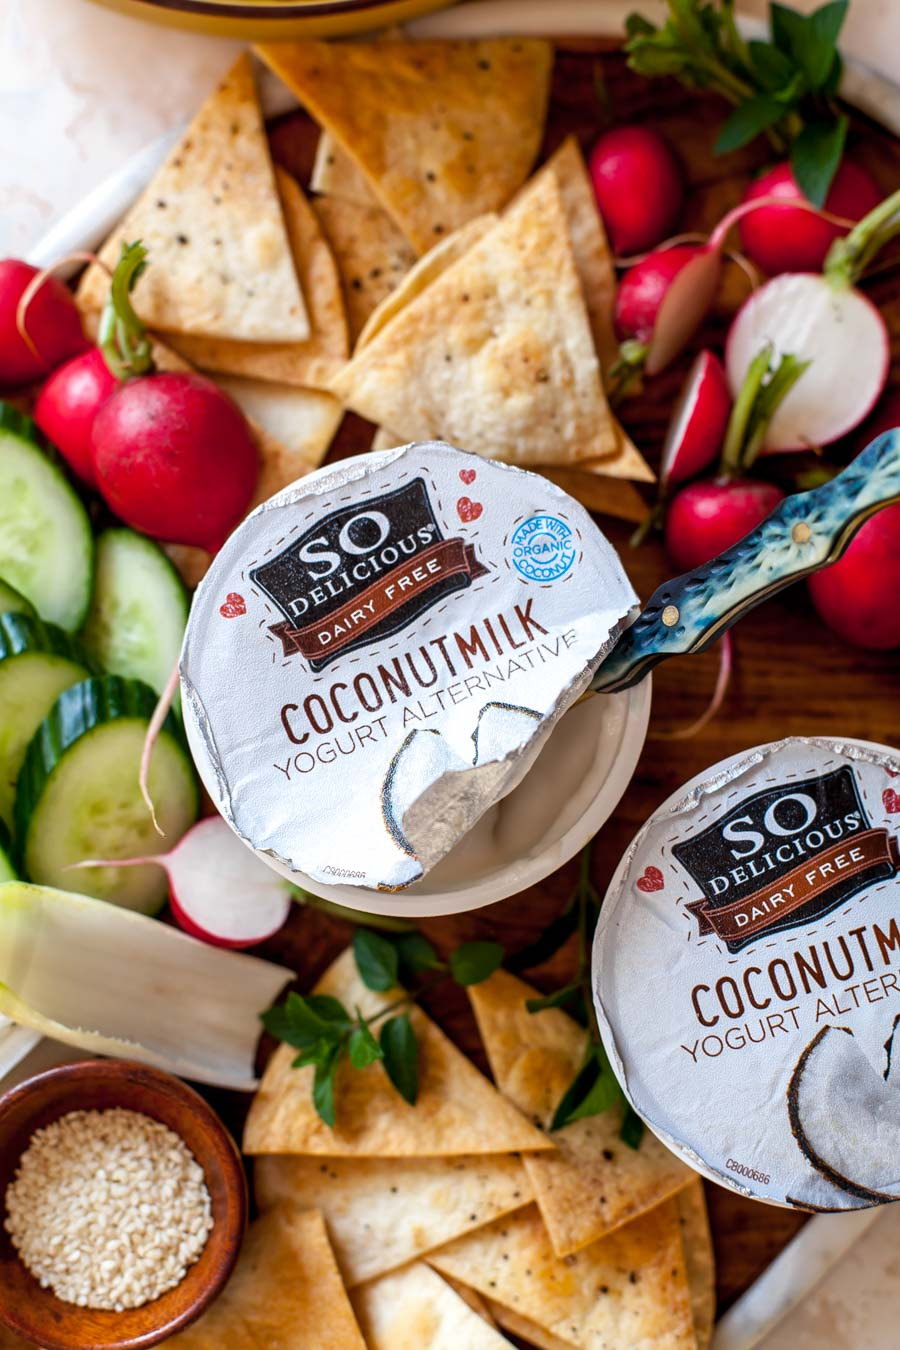 So Delicious Coconutmilk Yogurt Alternative